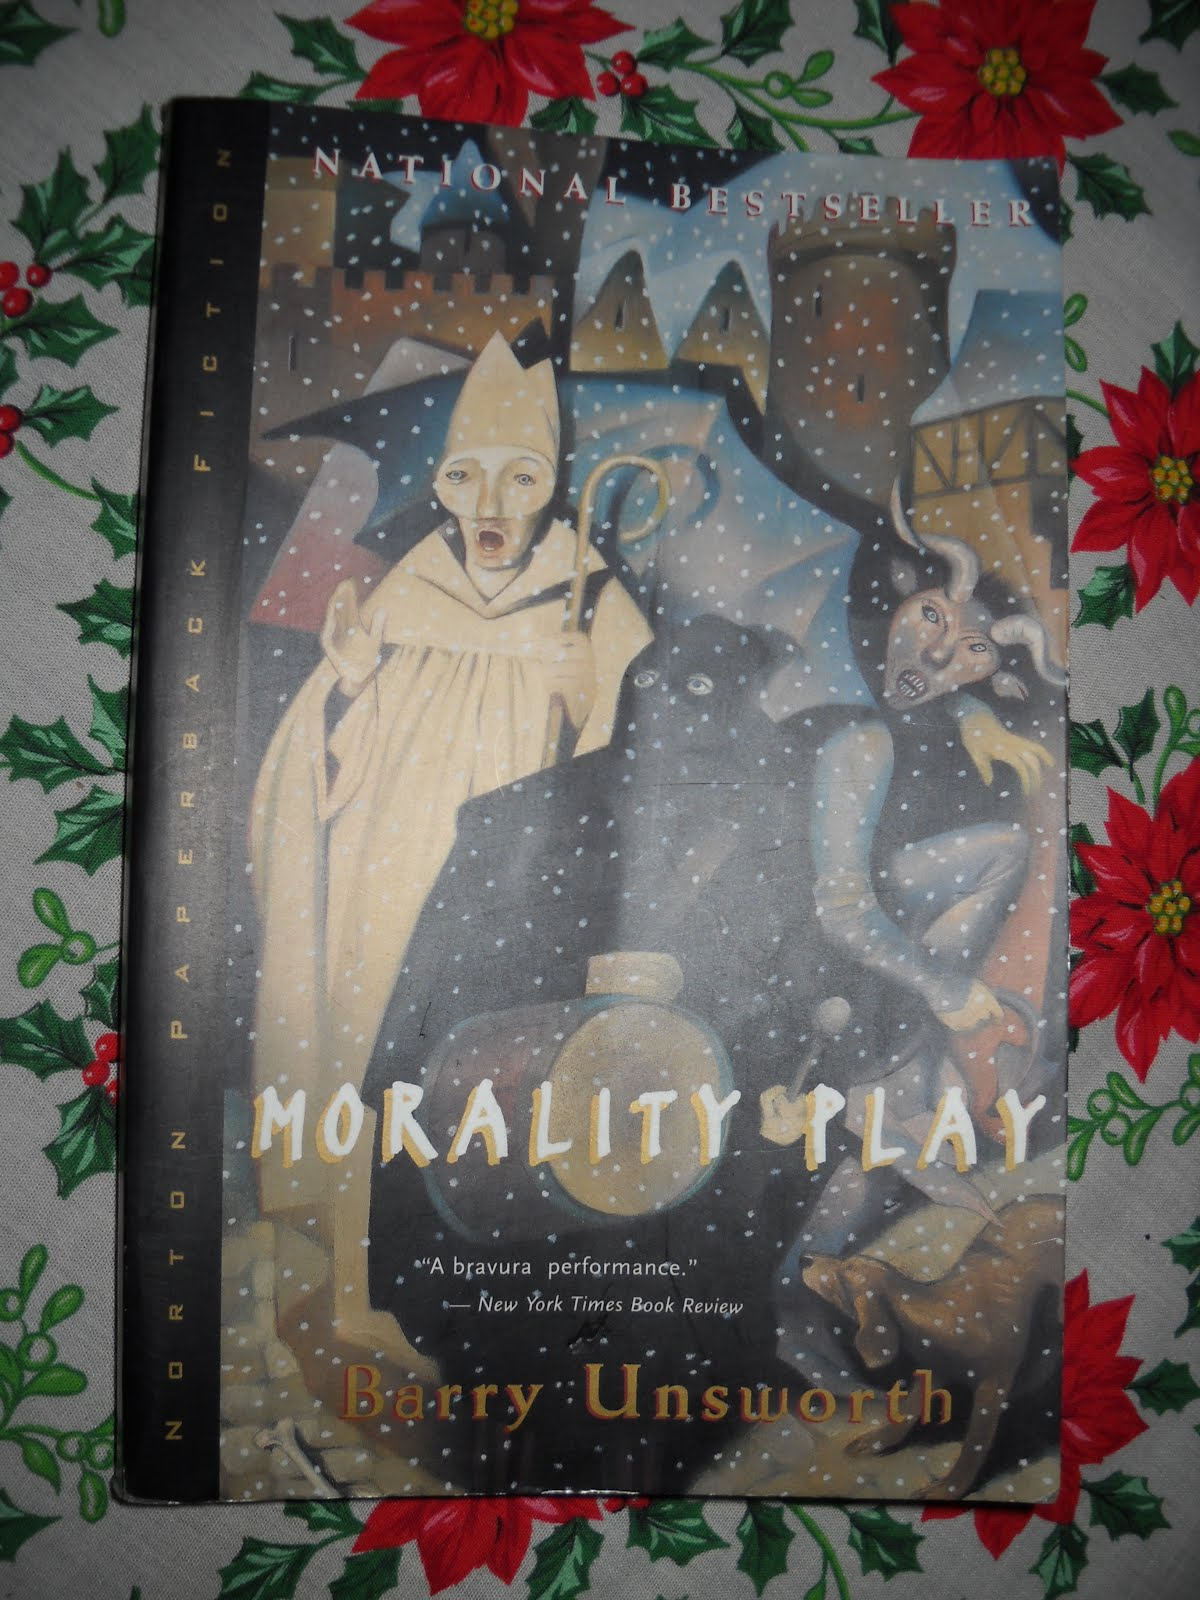 an analysis of vivid and descriptive passages in morality play by barry unsworth Reading @sherman_alexie poems and then writing a comparative essay with bo juyi (8th cent tang dyn) wish i could just read/think, not write content of a research paper keshav write an essay on pteridophytes leaves am grateful essays on abortion introduction for a literature review xerostomia sony playstation 3 slim comparison essay digital design research papers mfa grad school essay tubaf latex beispiel essay killer in the backseat analysis essay the play fences essays on friendship.